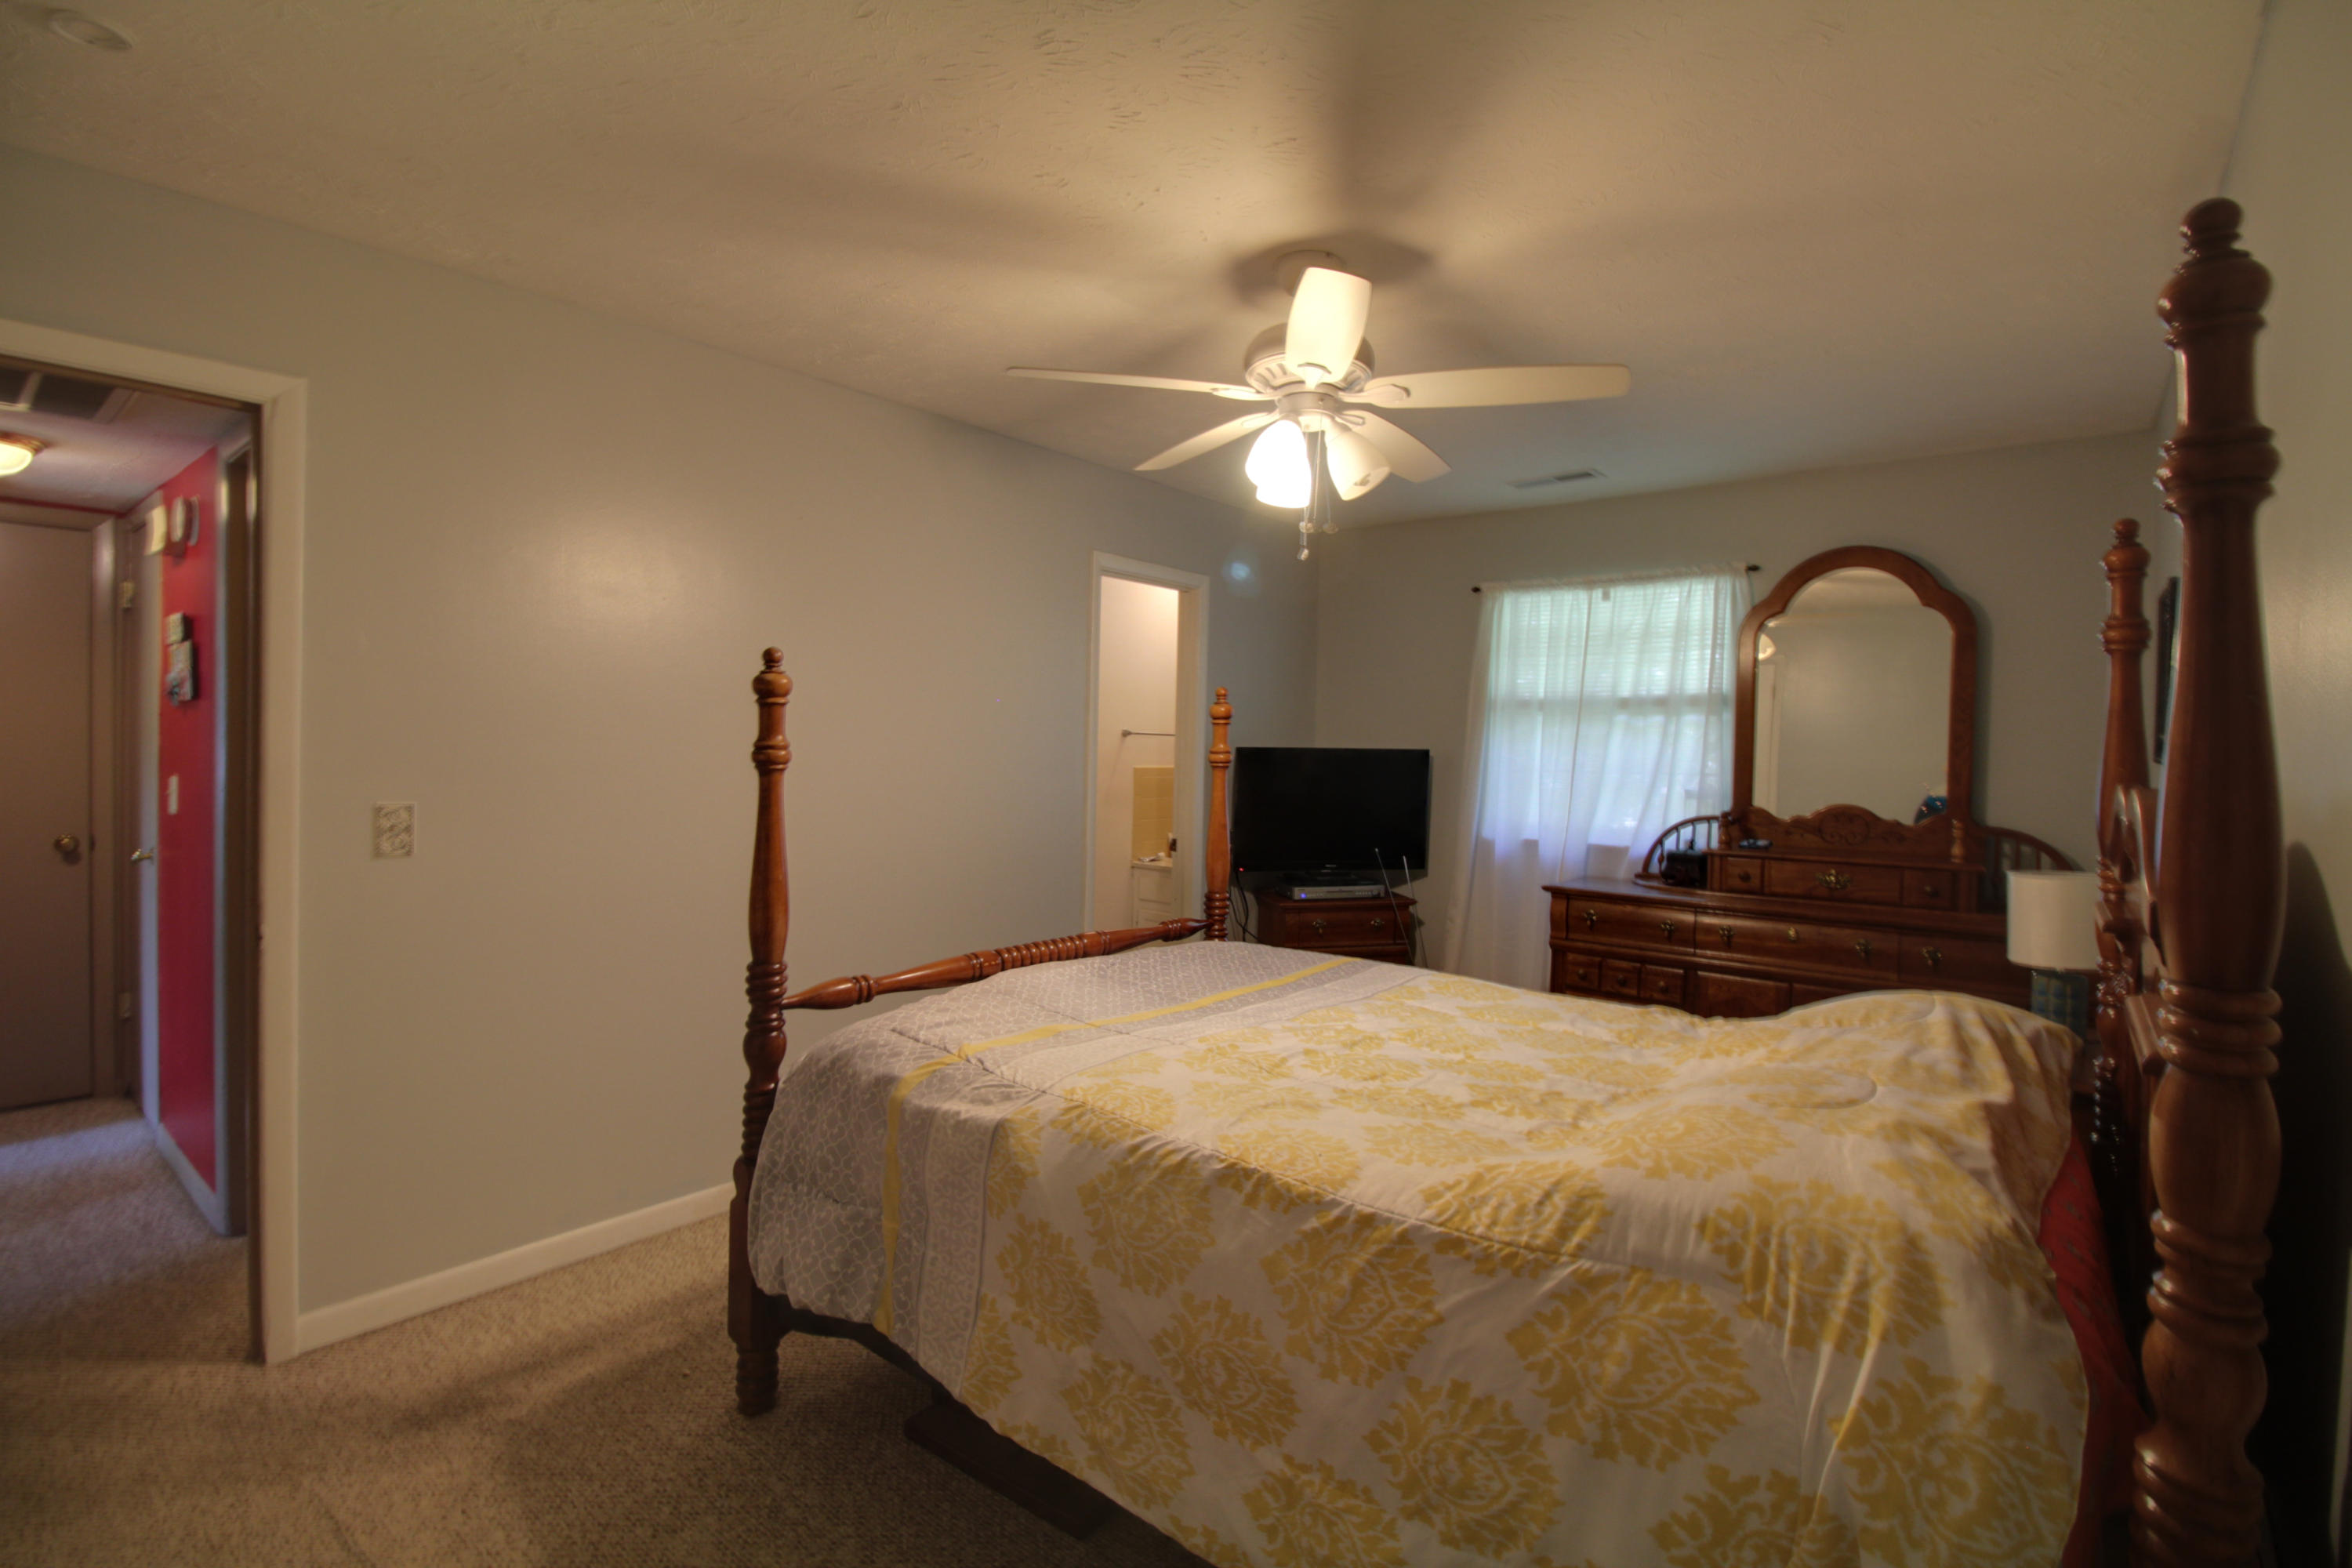 1609 Tecumseh, Knoxville, Tennessee, United States 37912, 2 Bedrooms Bedrooms, ,2 BathroomsBathrooms,Single Family,For Sale,Tecumseh,1039550